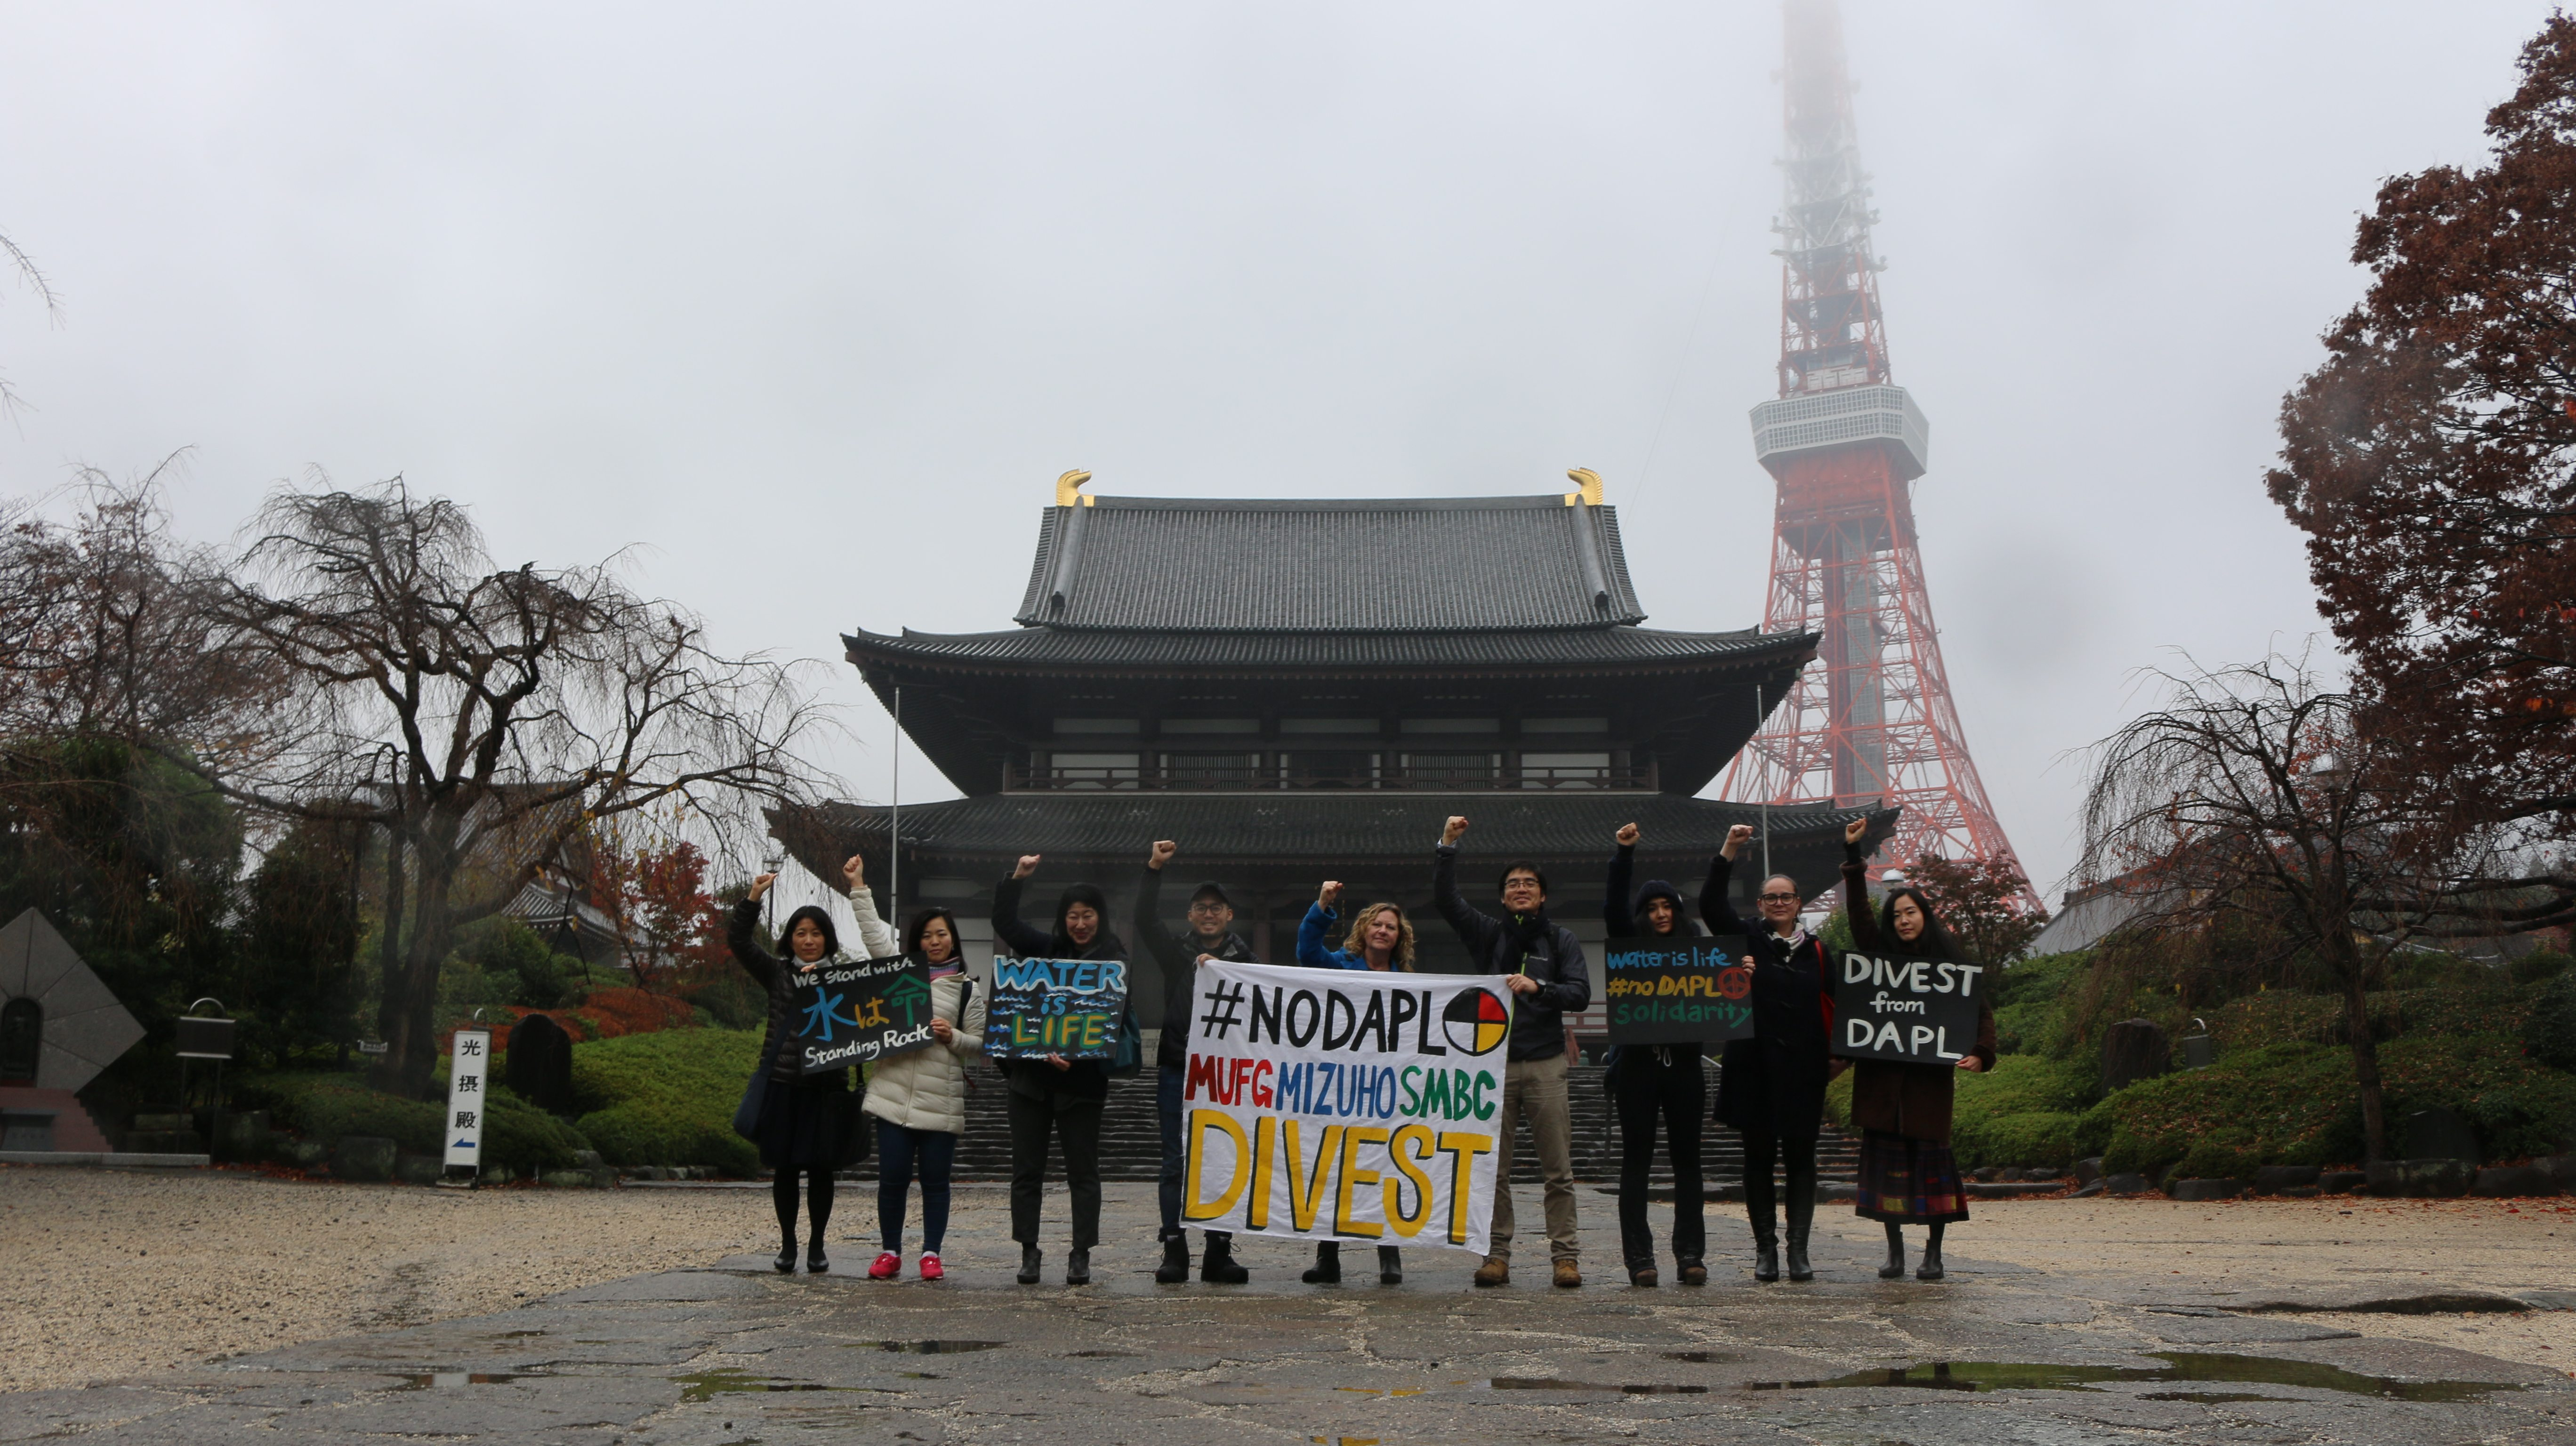 Greenpeace Japan and 350 Japan organized a joint #NoDAPL action to show solidarity with Standing Rock and request meetings with Japanese banks Mizuho Bank, Mitsubishi Tokyo UFJ, and SMBC Nikko Securities to discuss withdrawing their funding from the DAPL.